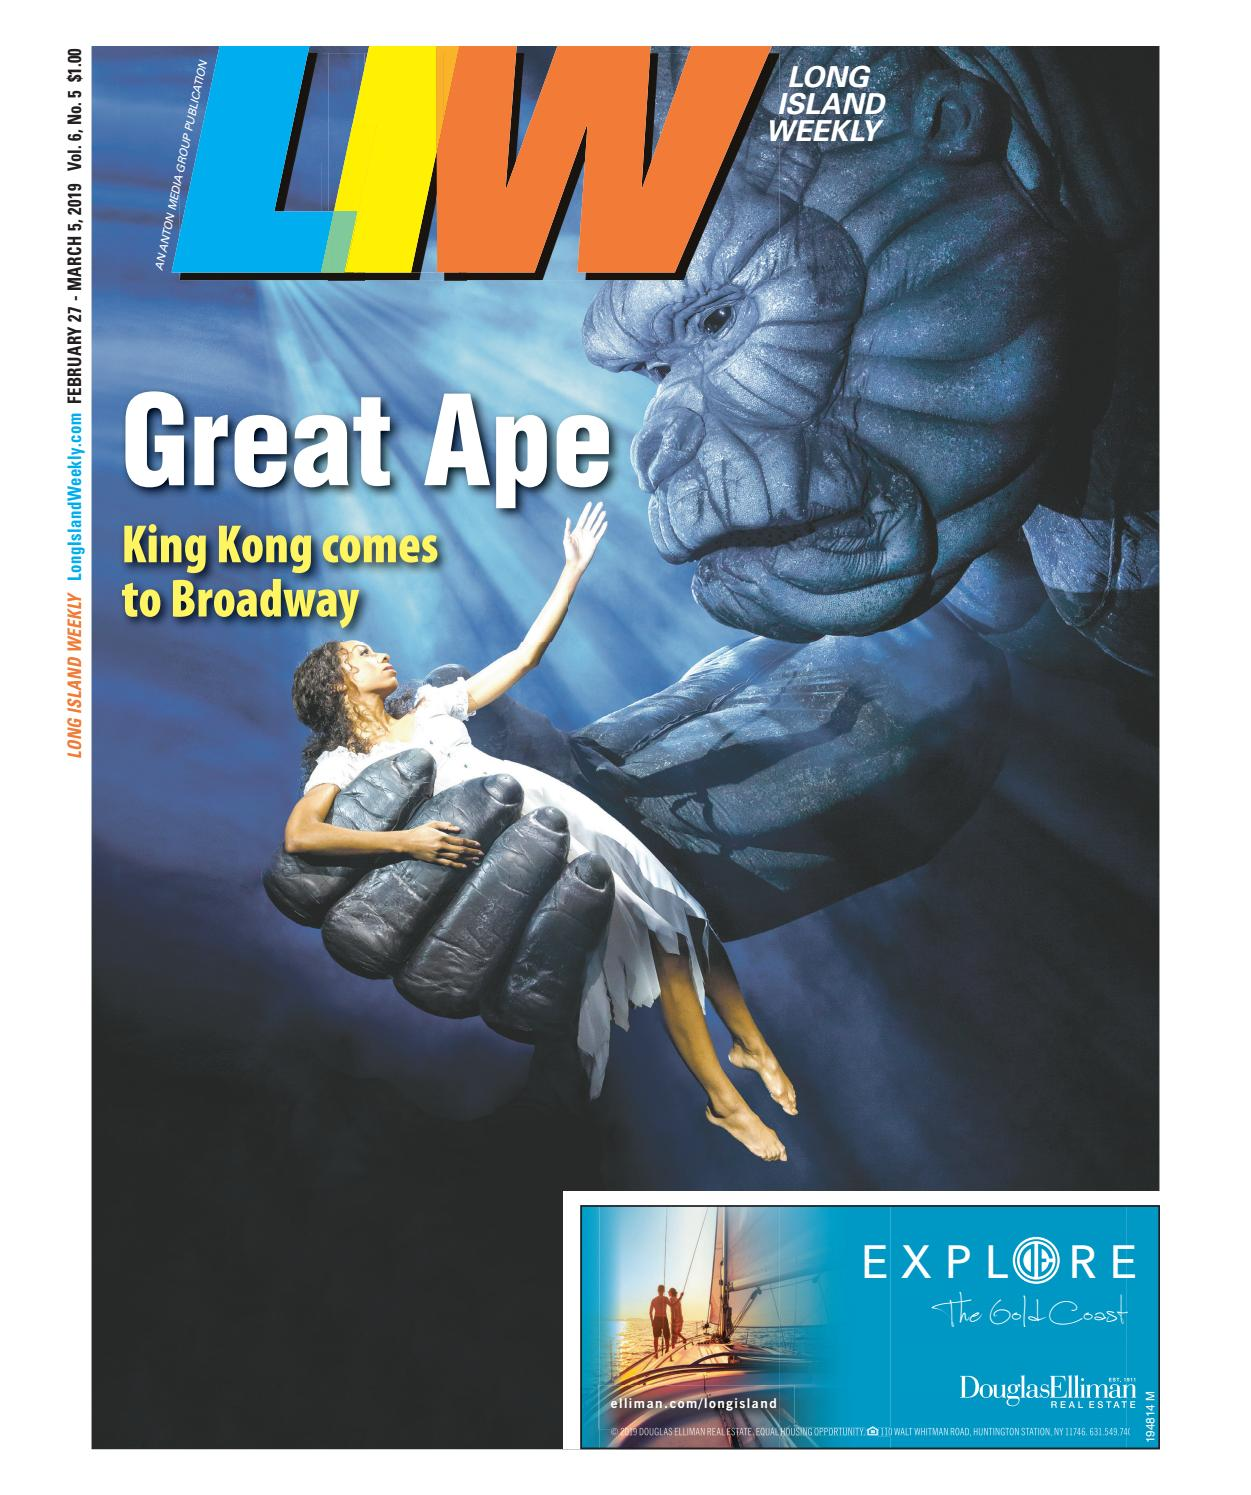 Long Island Weekly 02 27 19 By Anton Community Newspapers Issuu